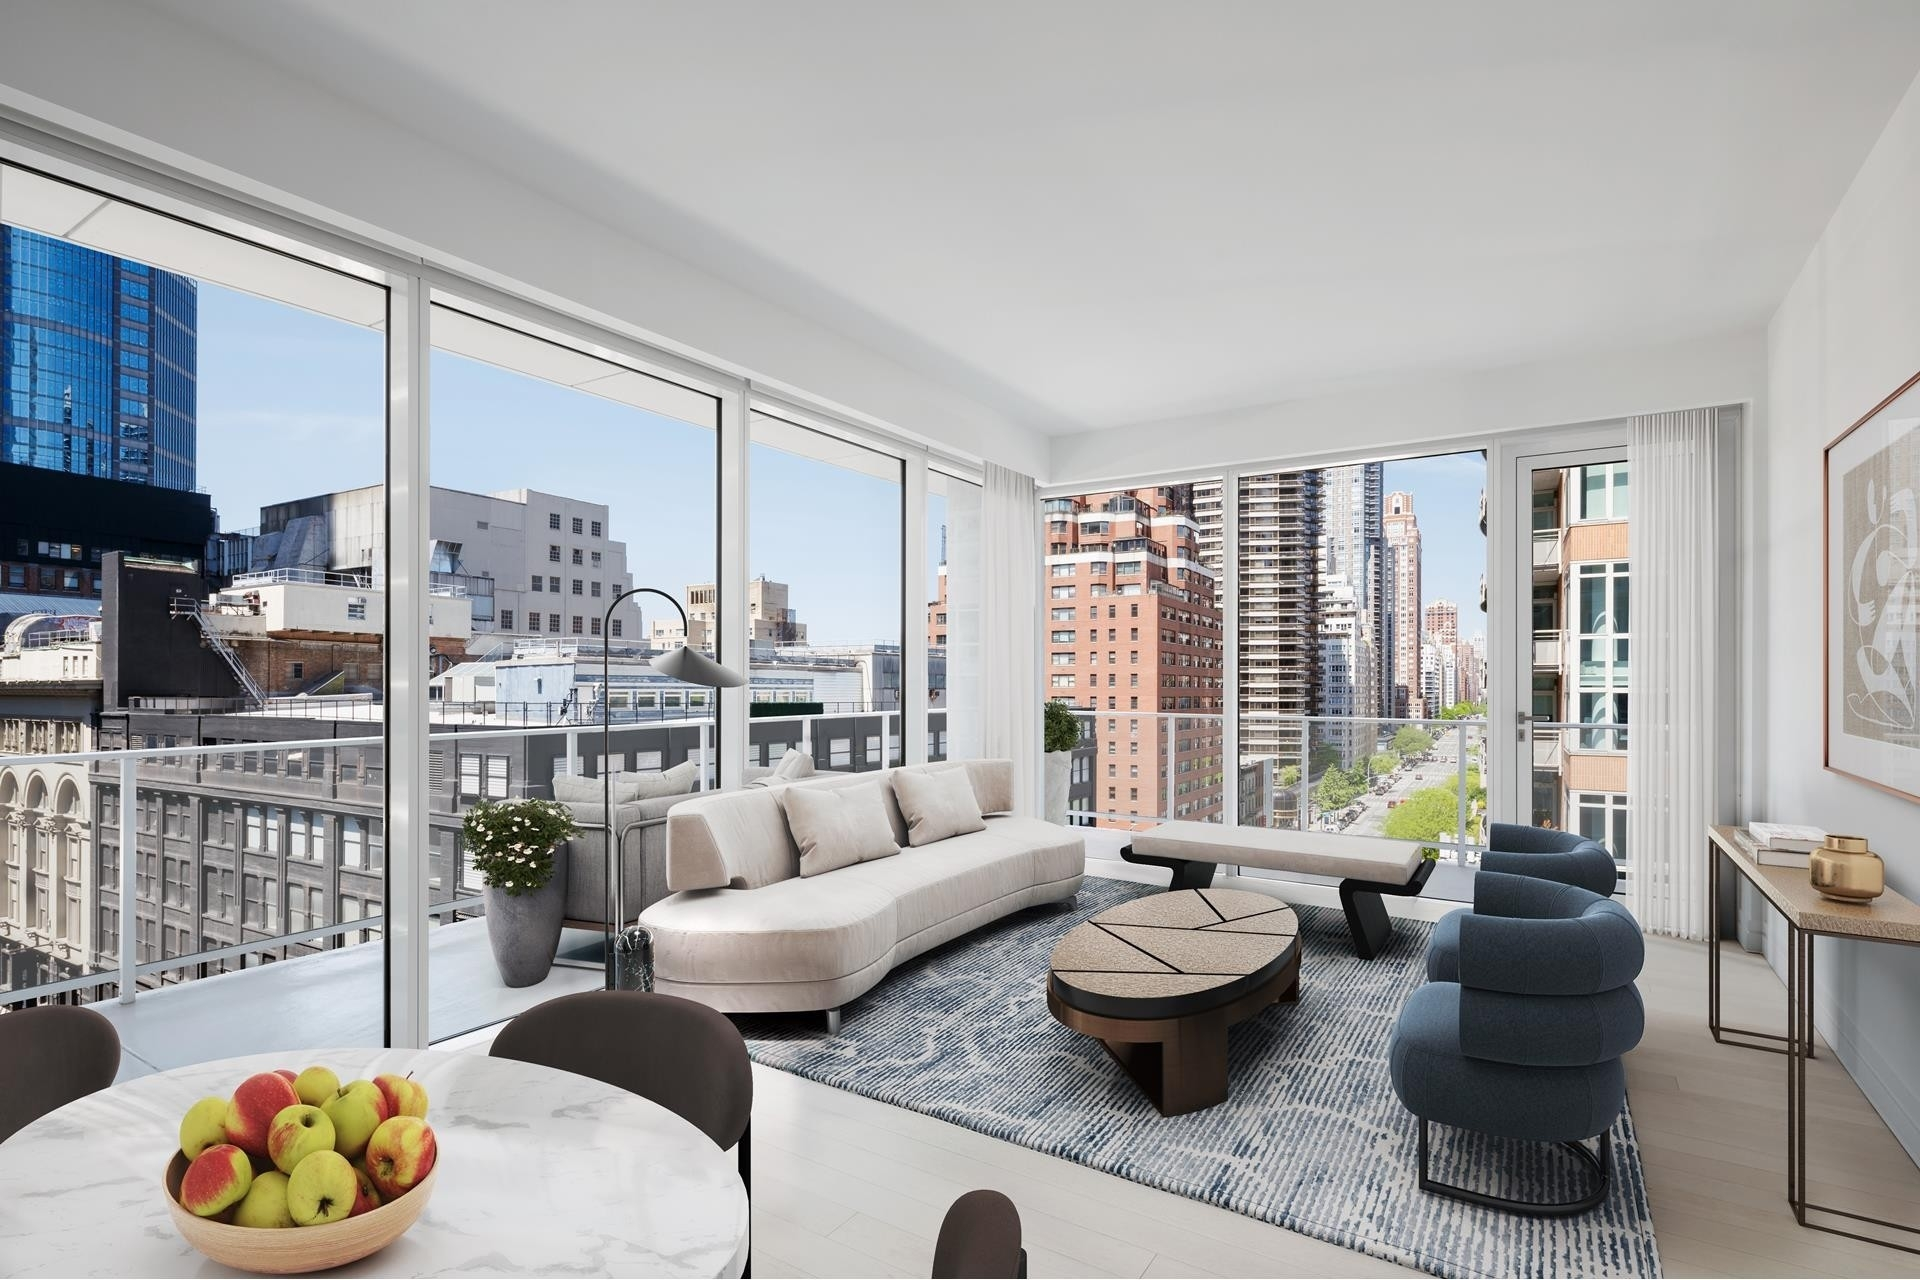 Condominium for Sale at 200 East 59th St, 5A Midtown Manhattan, New York, NY 10022